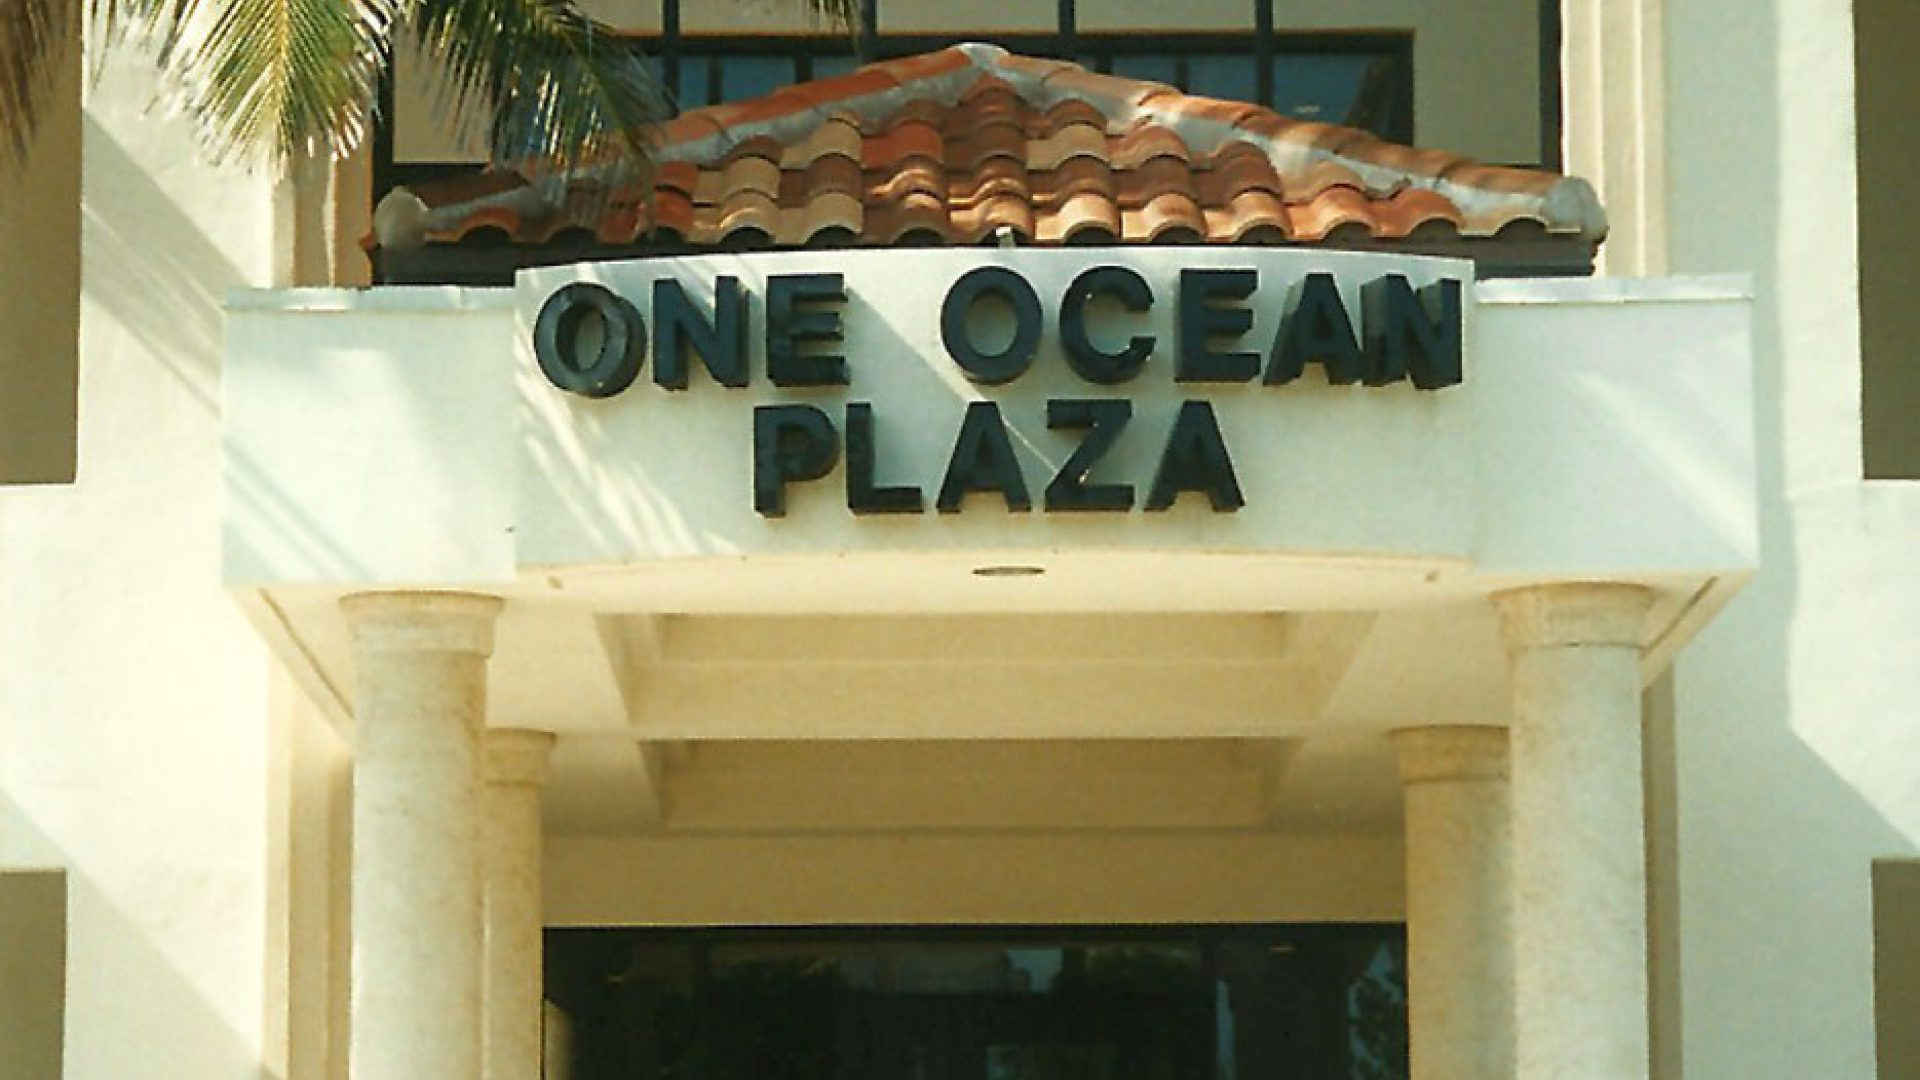 Property: One Ocean Plaza